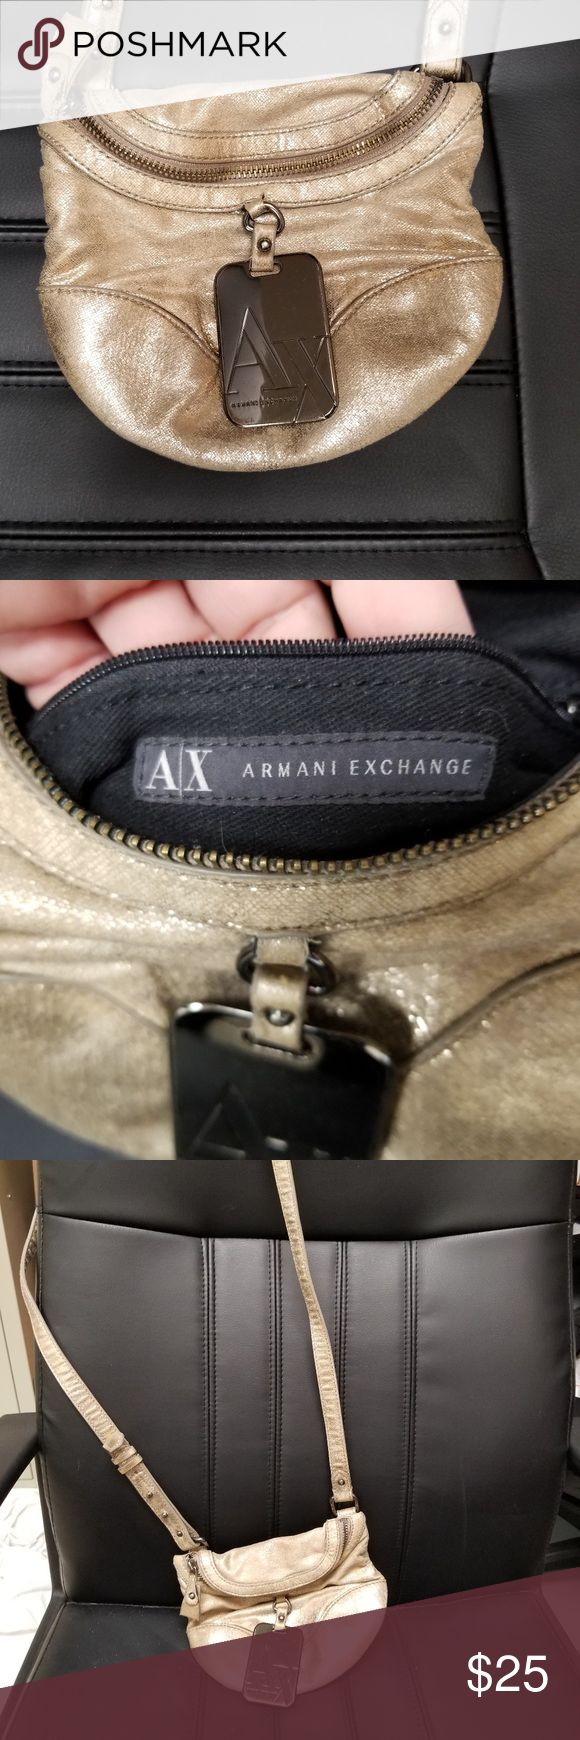 """Armani Exchange Distressed Gold Leather Crossbody beautiful condition - clean inside - minor scratches on metal logo (see pics).  This purse has a strap drop (from shoulder to bag) of approx. 24"""" and is adjustable.  The purse itself is 6.5"""" in length and 8"""" at its widest point.  The metal logo is approx. 2 x 3 inches. Armani Exchange Bags Crossbody Bags"""